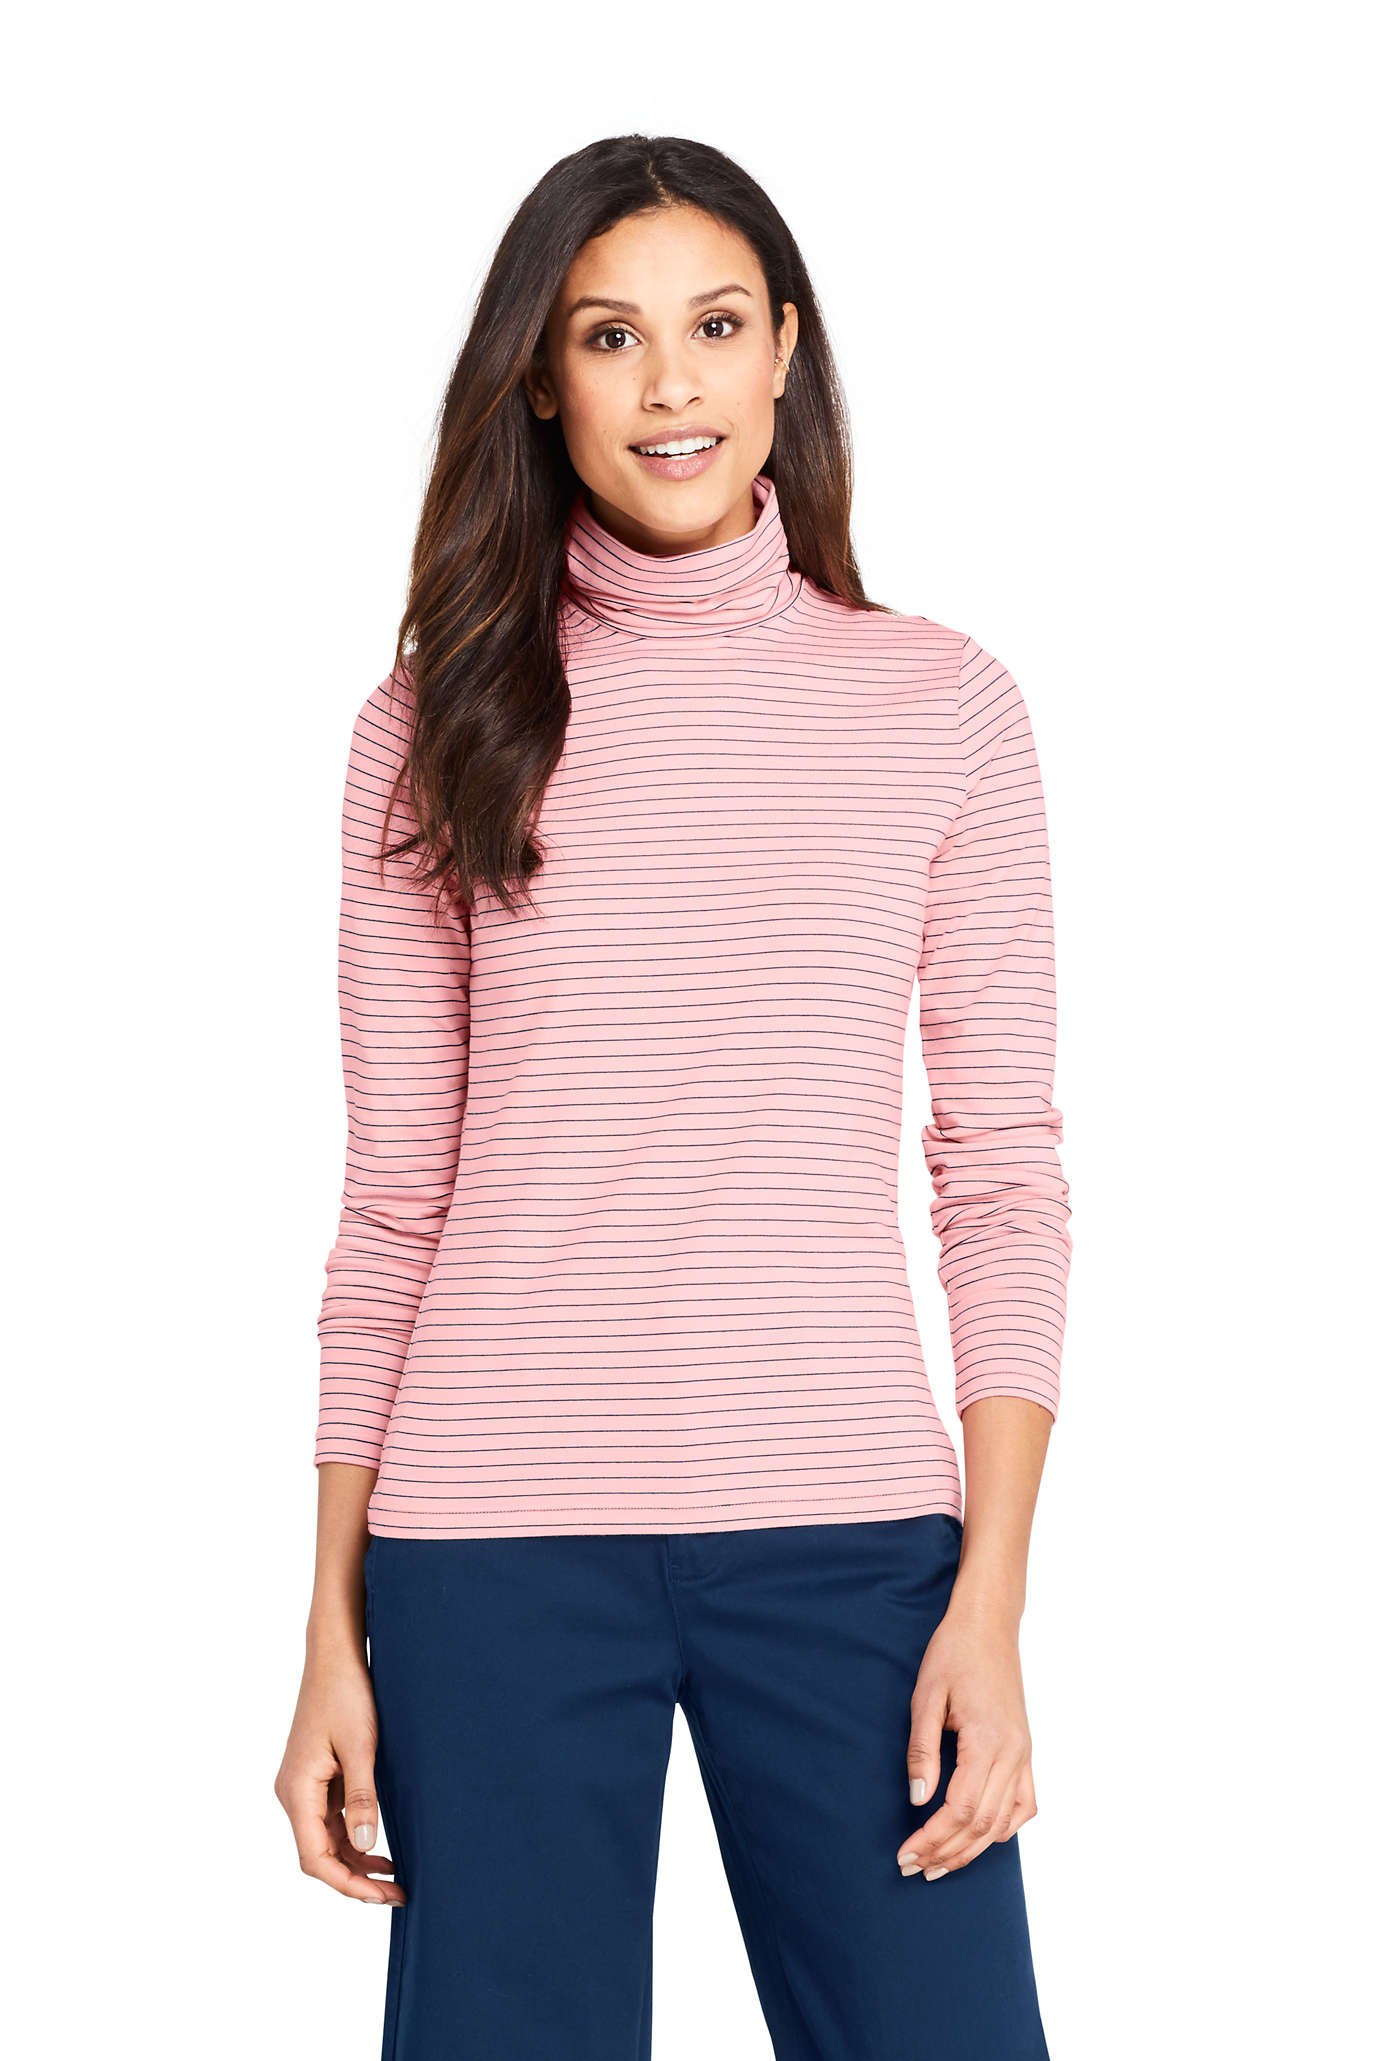 School Uniform Women's Relaxed Cotton Long Sleeve Mock Turtleneck